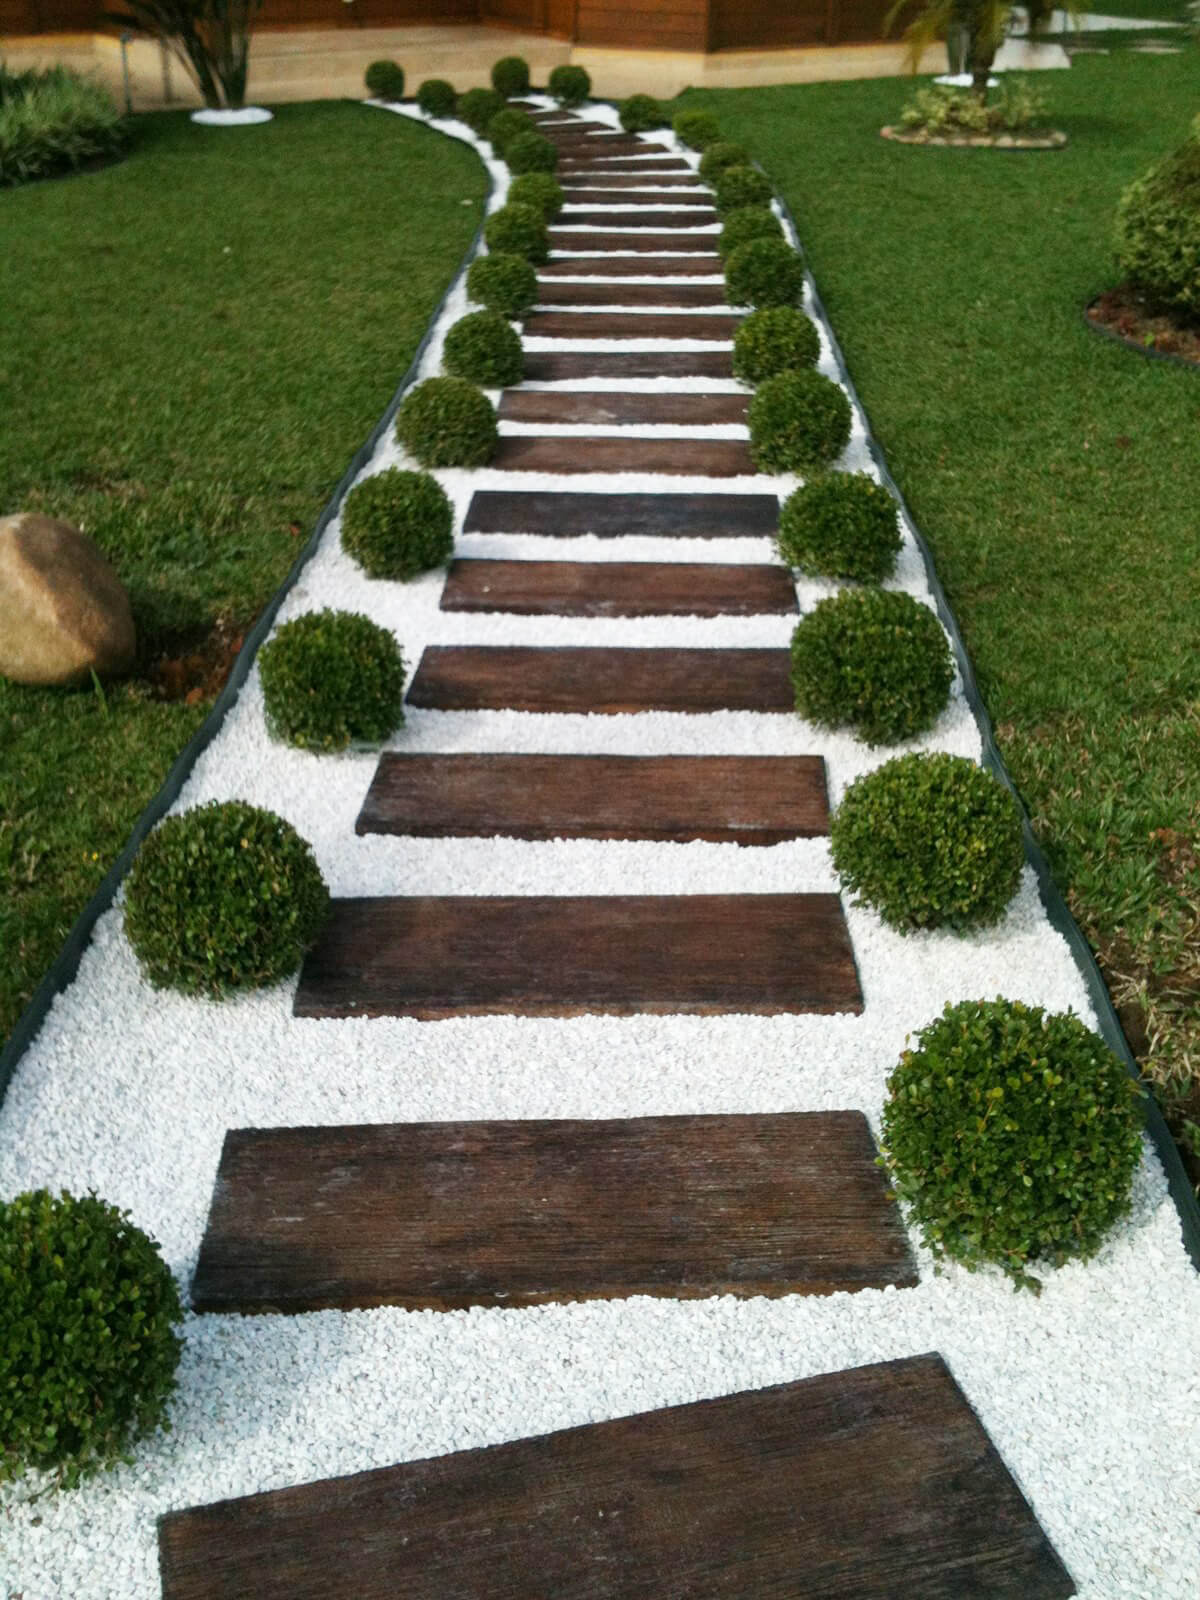 Backyard Path Ideas 41 ingenious and beautiful diy garden path ideas to realize in your backyard homesthetics backyard landscaping 1 Clean Stone And Wood Ladder Effect